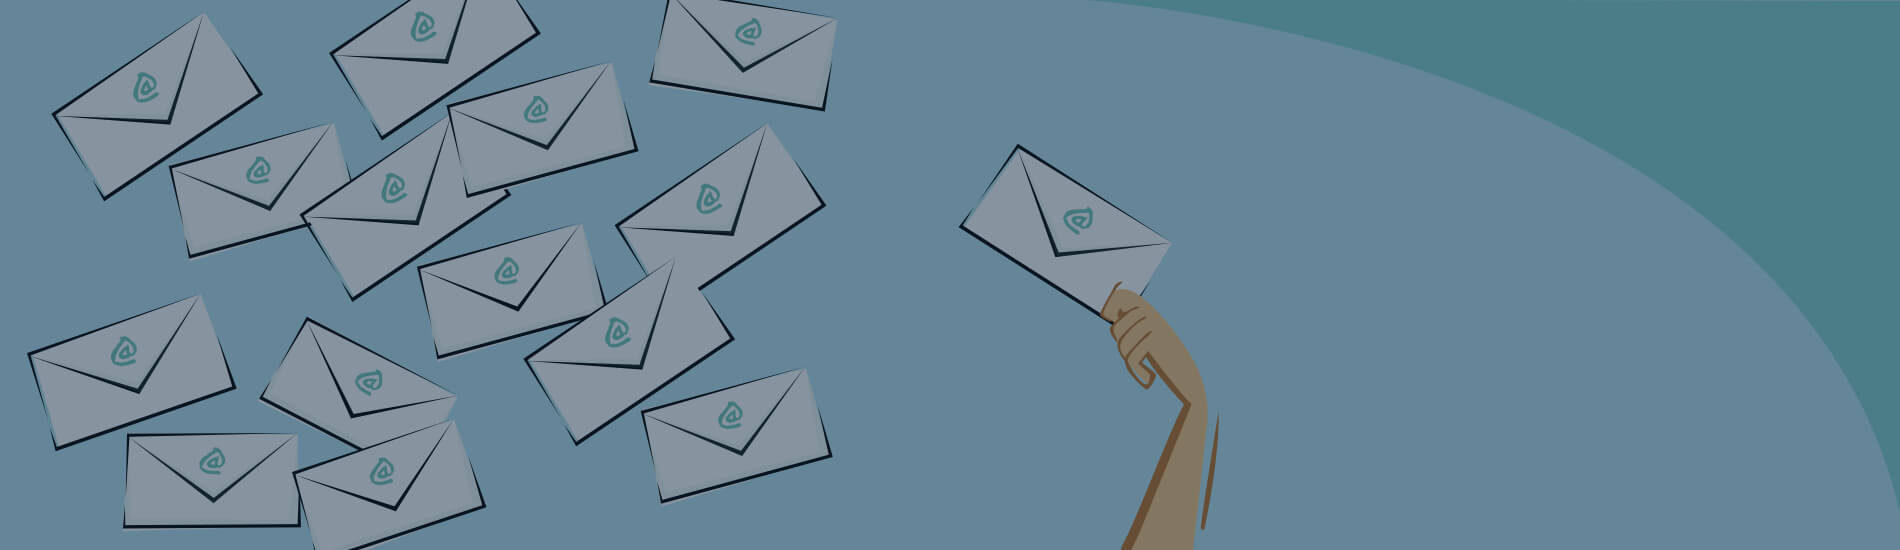 How to Resend an Email Without Annoying Your Subscribers